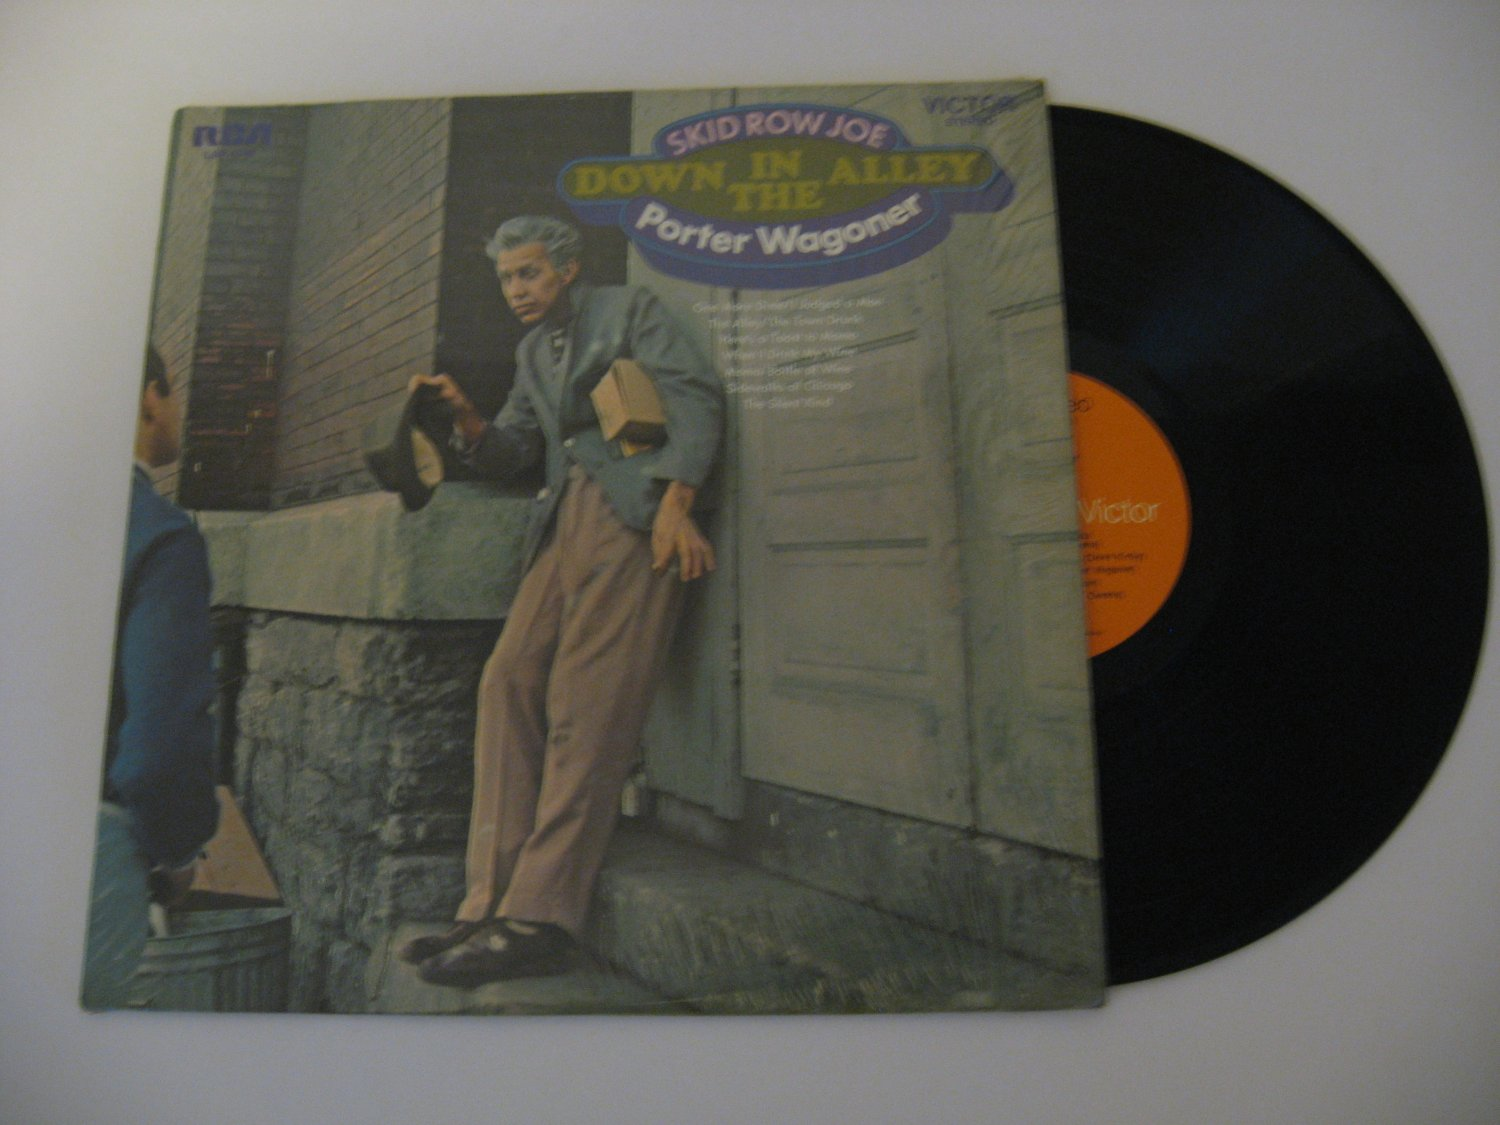 Porter Wagoner - Down In The Alley - 1970 (Vinyl Records)